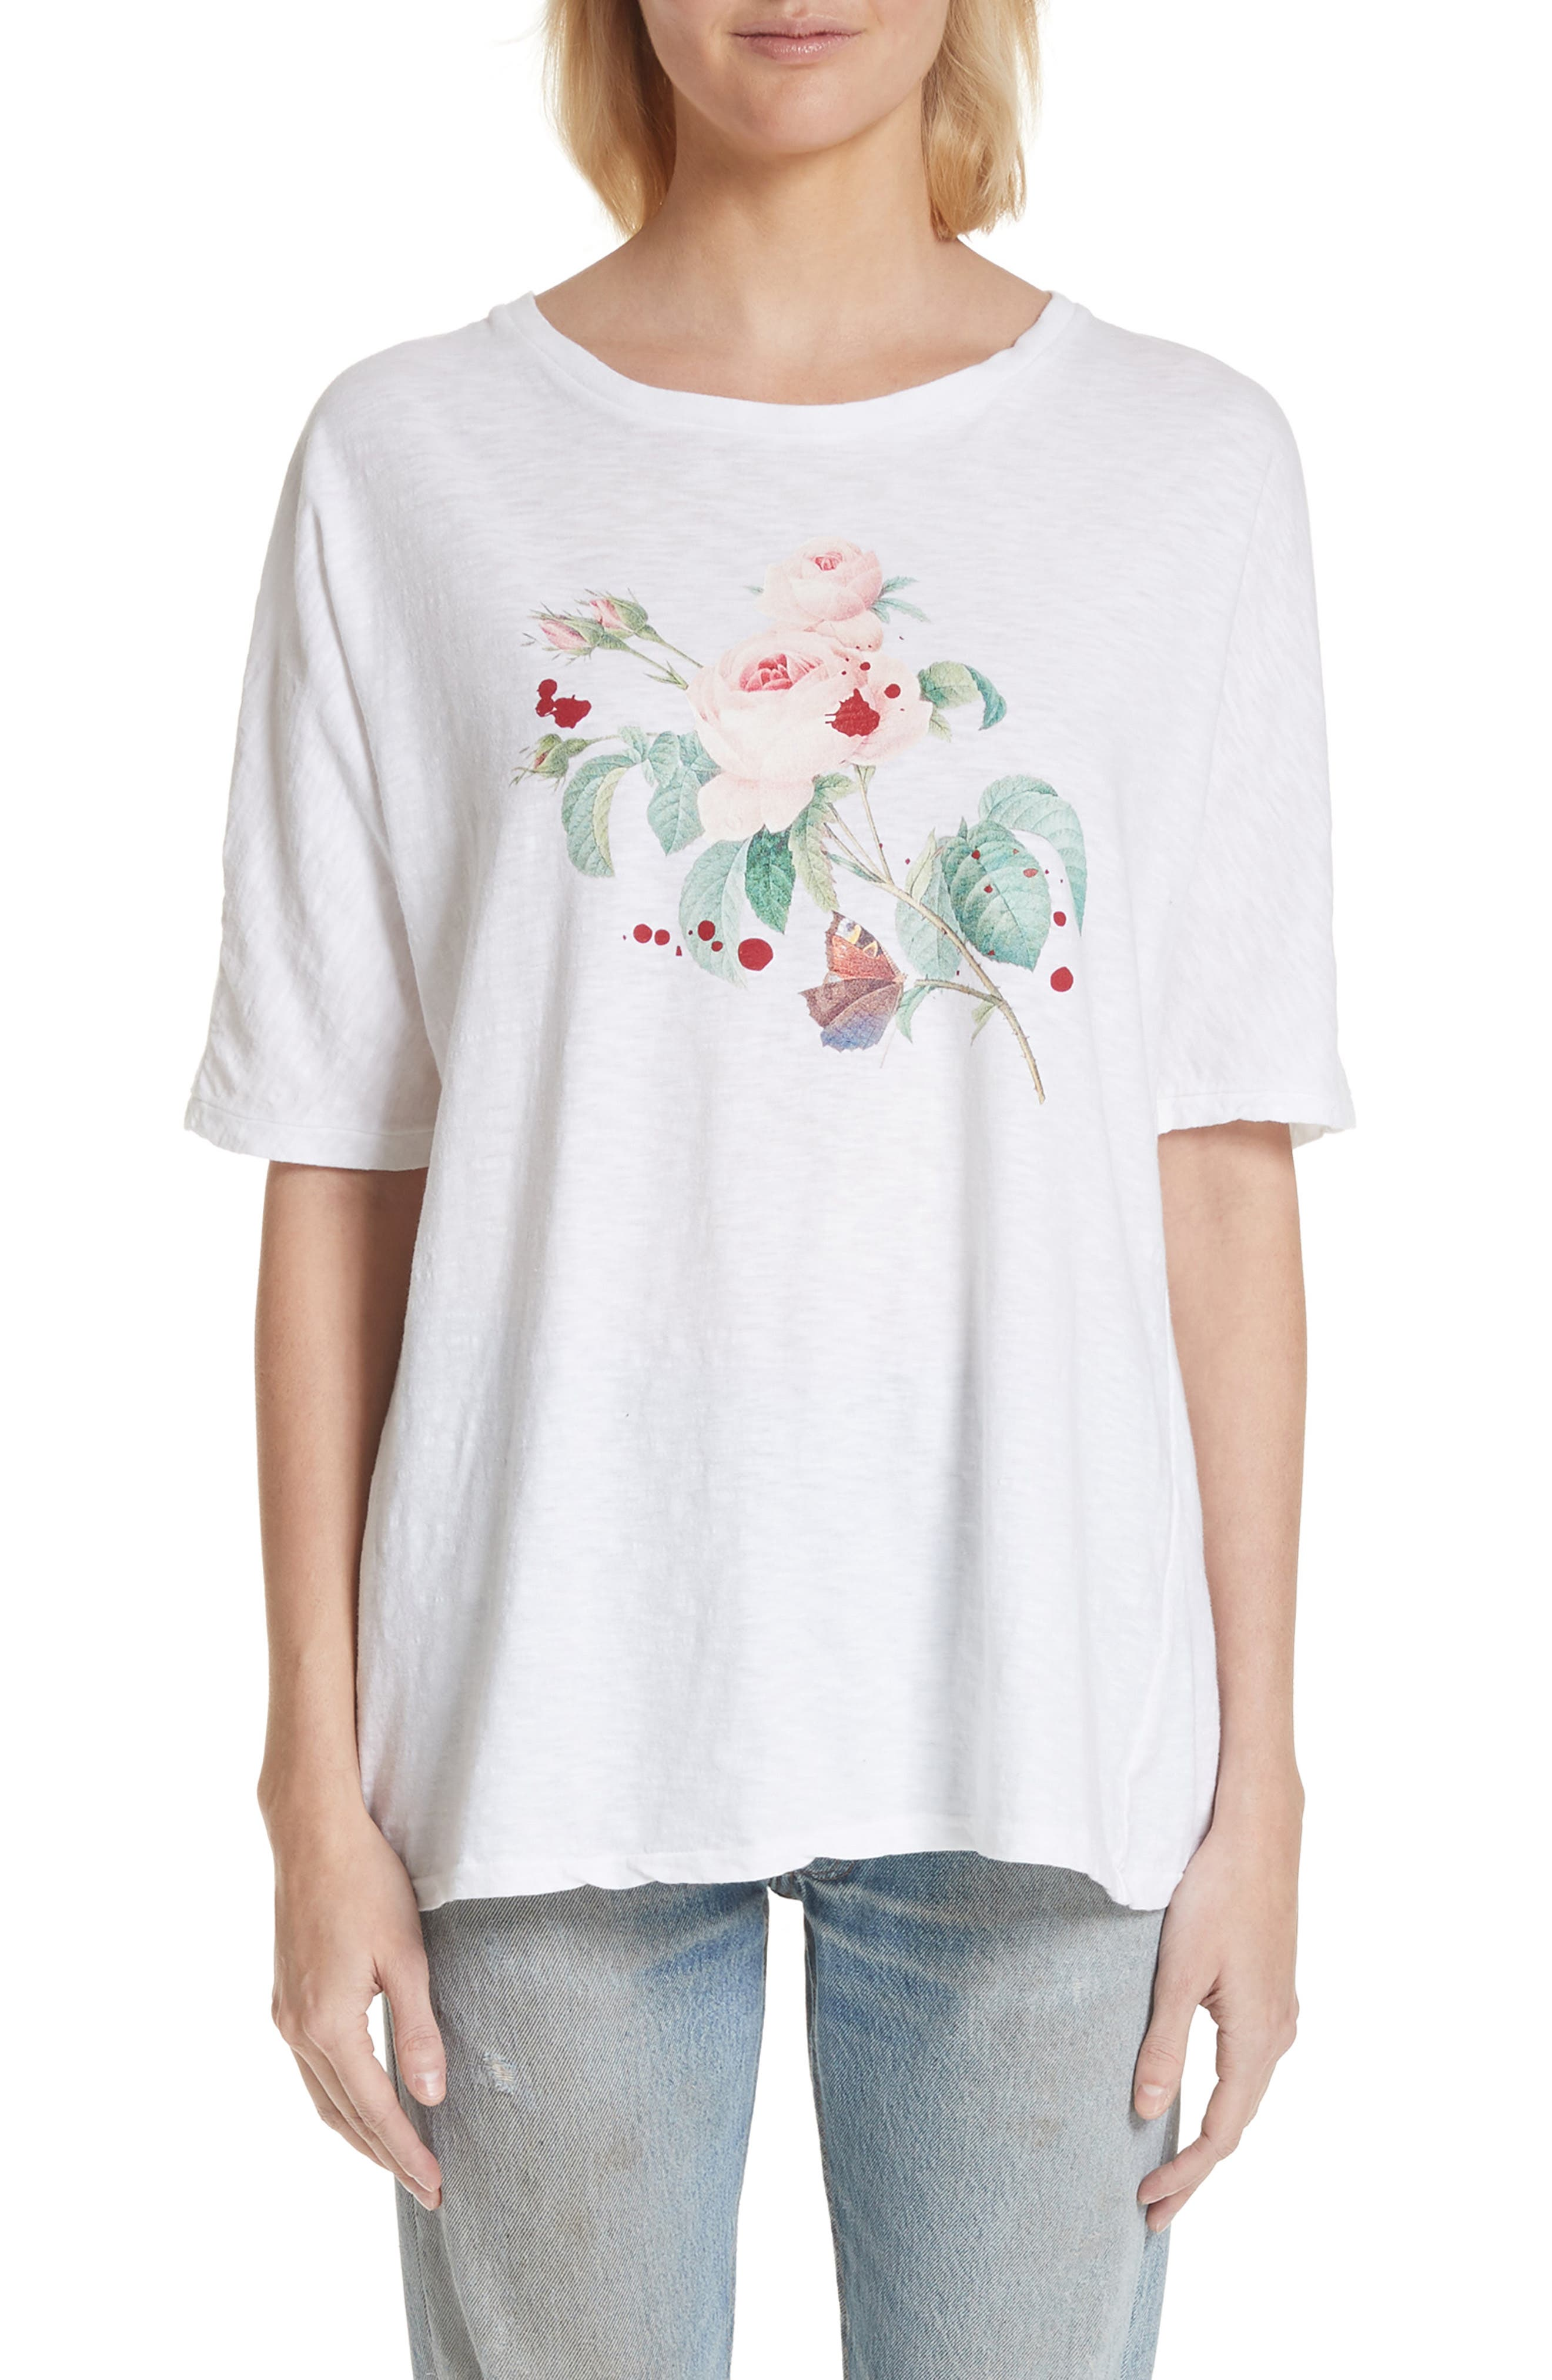 Undercover Rose Print Tee